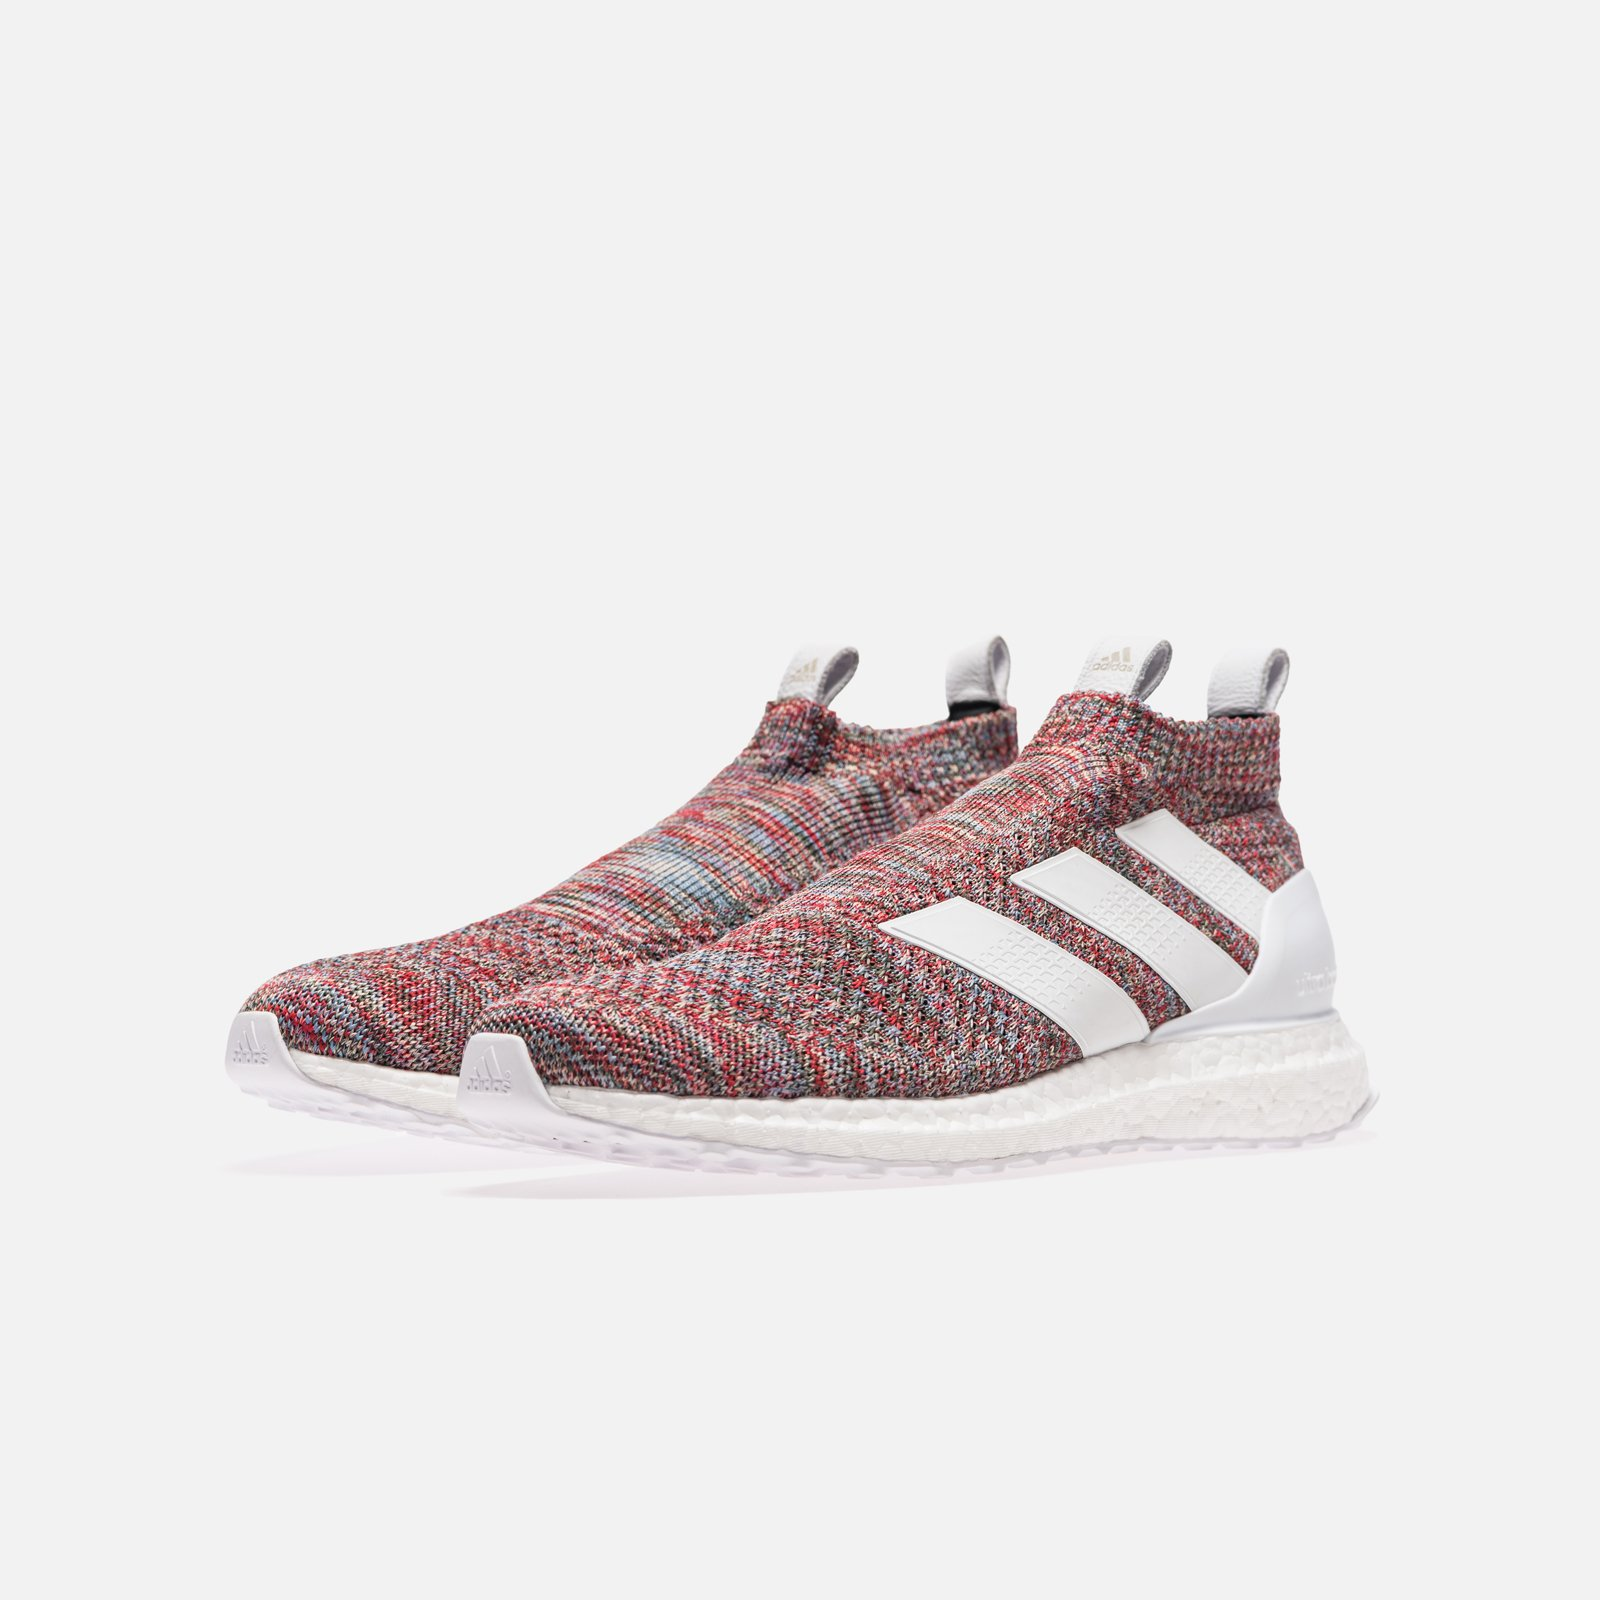 size 40 e7956 b4809 KITH X ADIDAS SOCCER ACE 16+ PURECONTROL ULTRABOOST